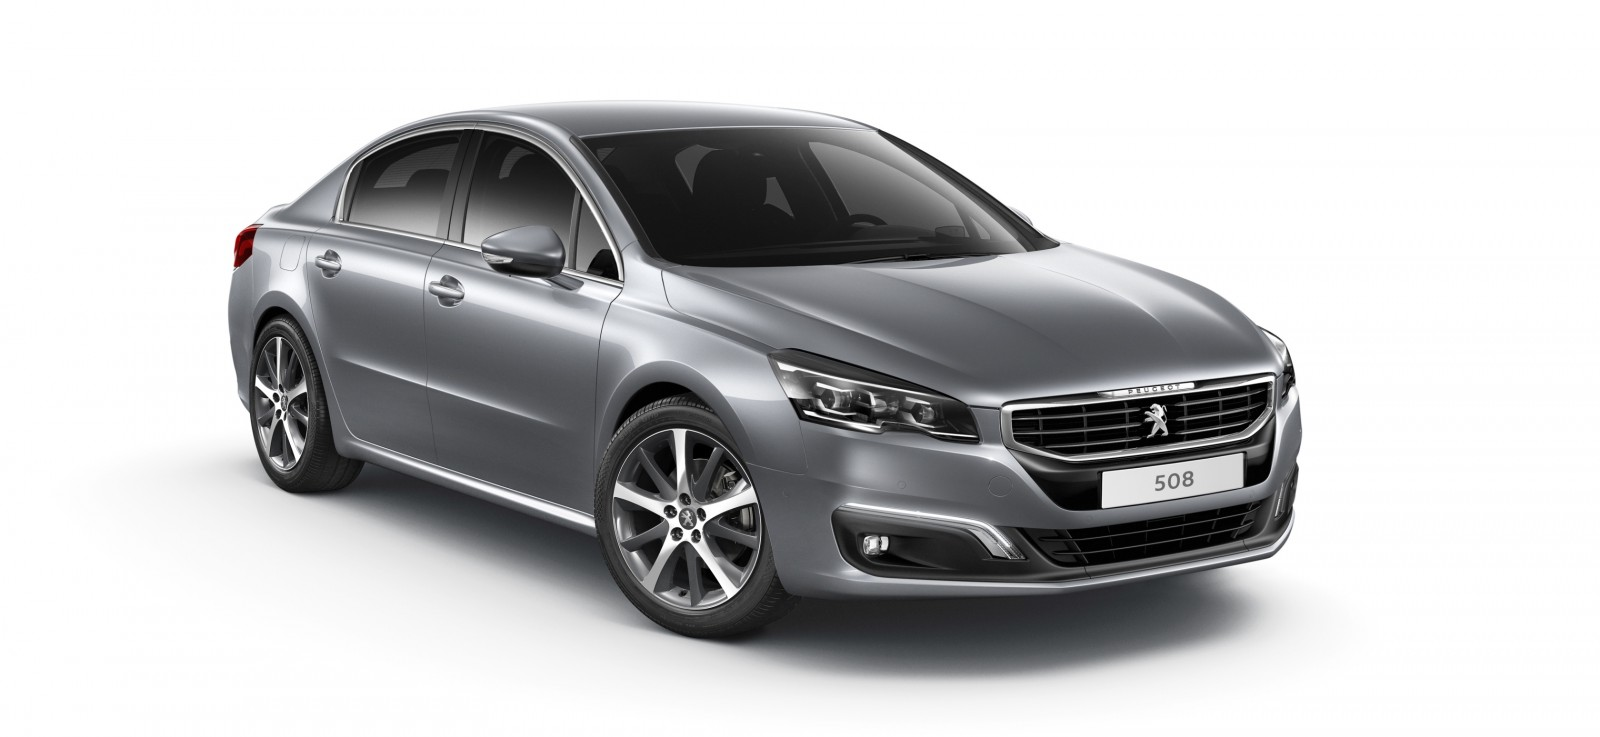 2015 Peugeot 508 Facelifted With New LED DRLs, Box-Design Beams and Tweaked Cabin Tech 3